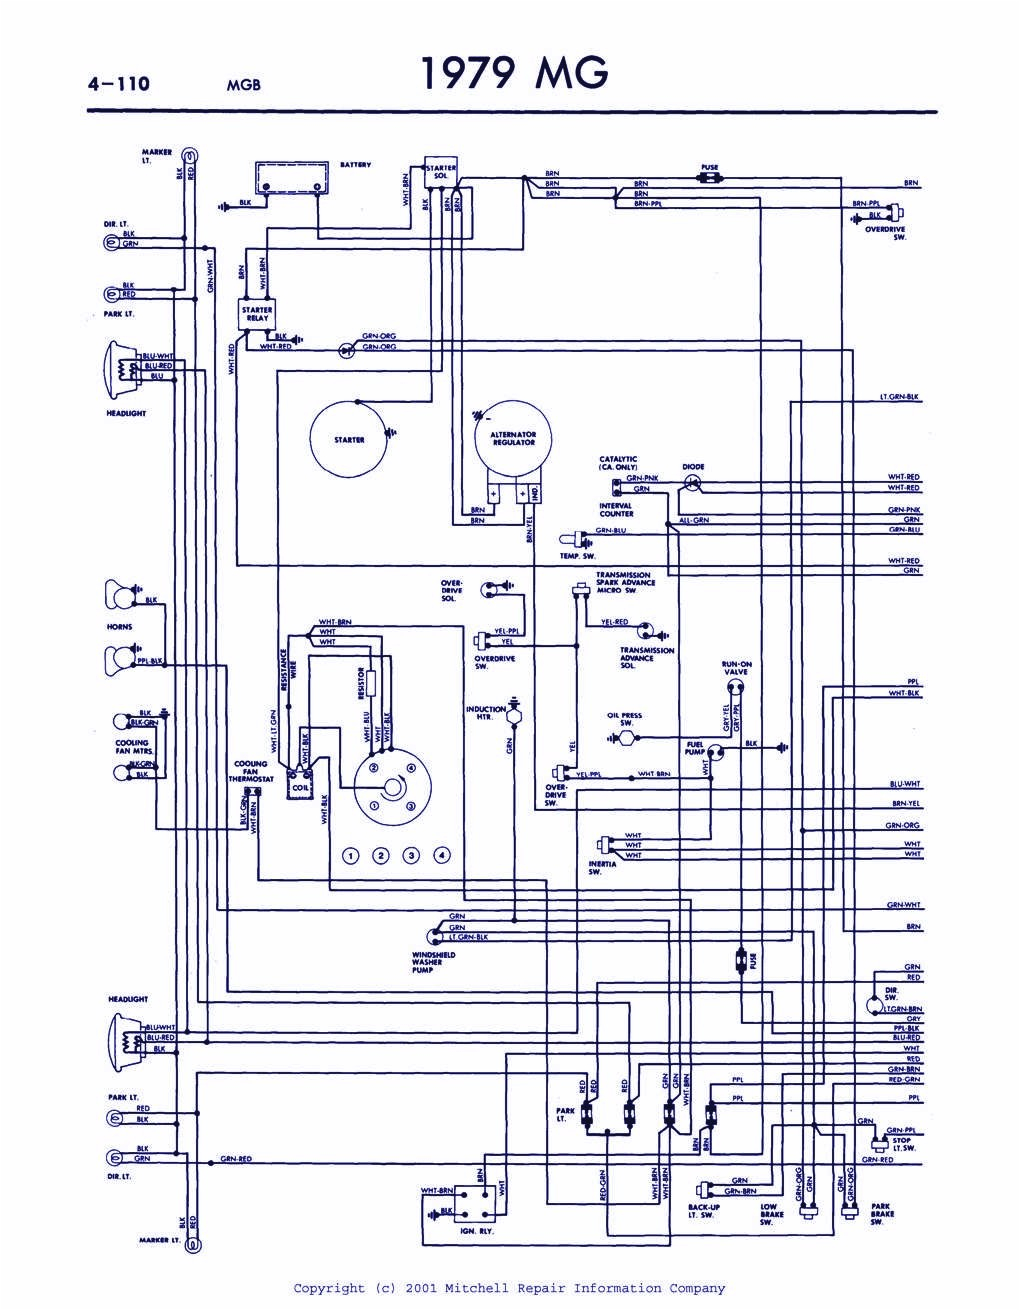 1976 mgb starter wiring diagram wiring diagram technic